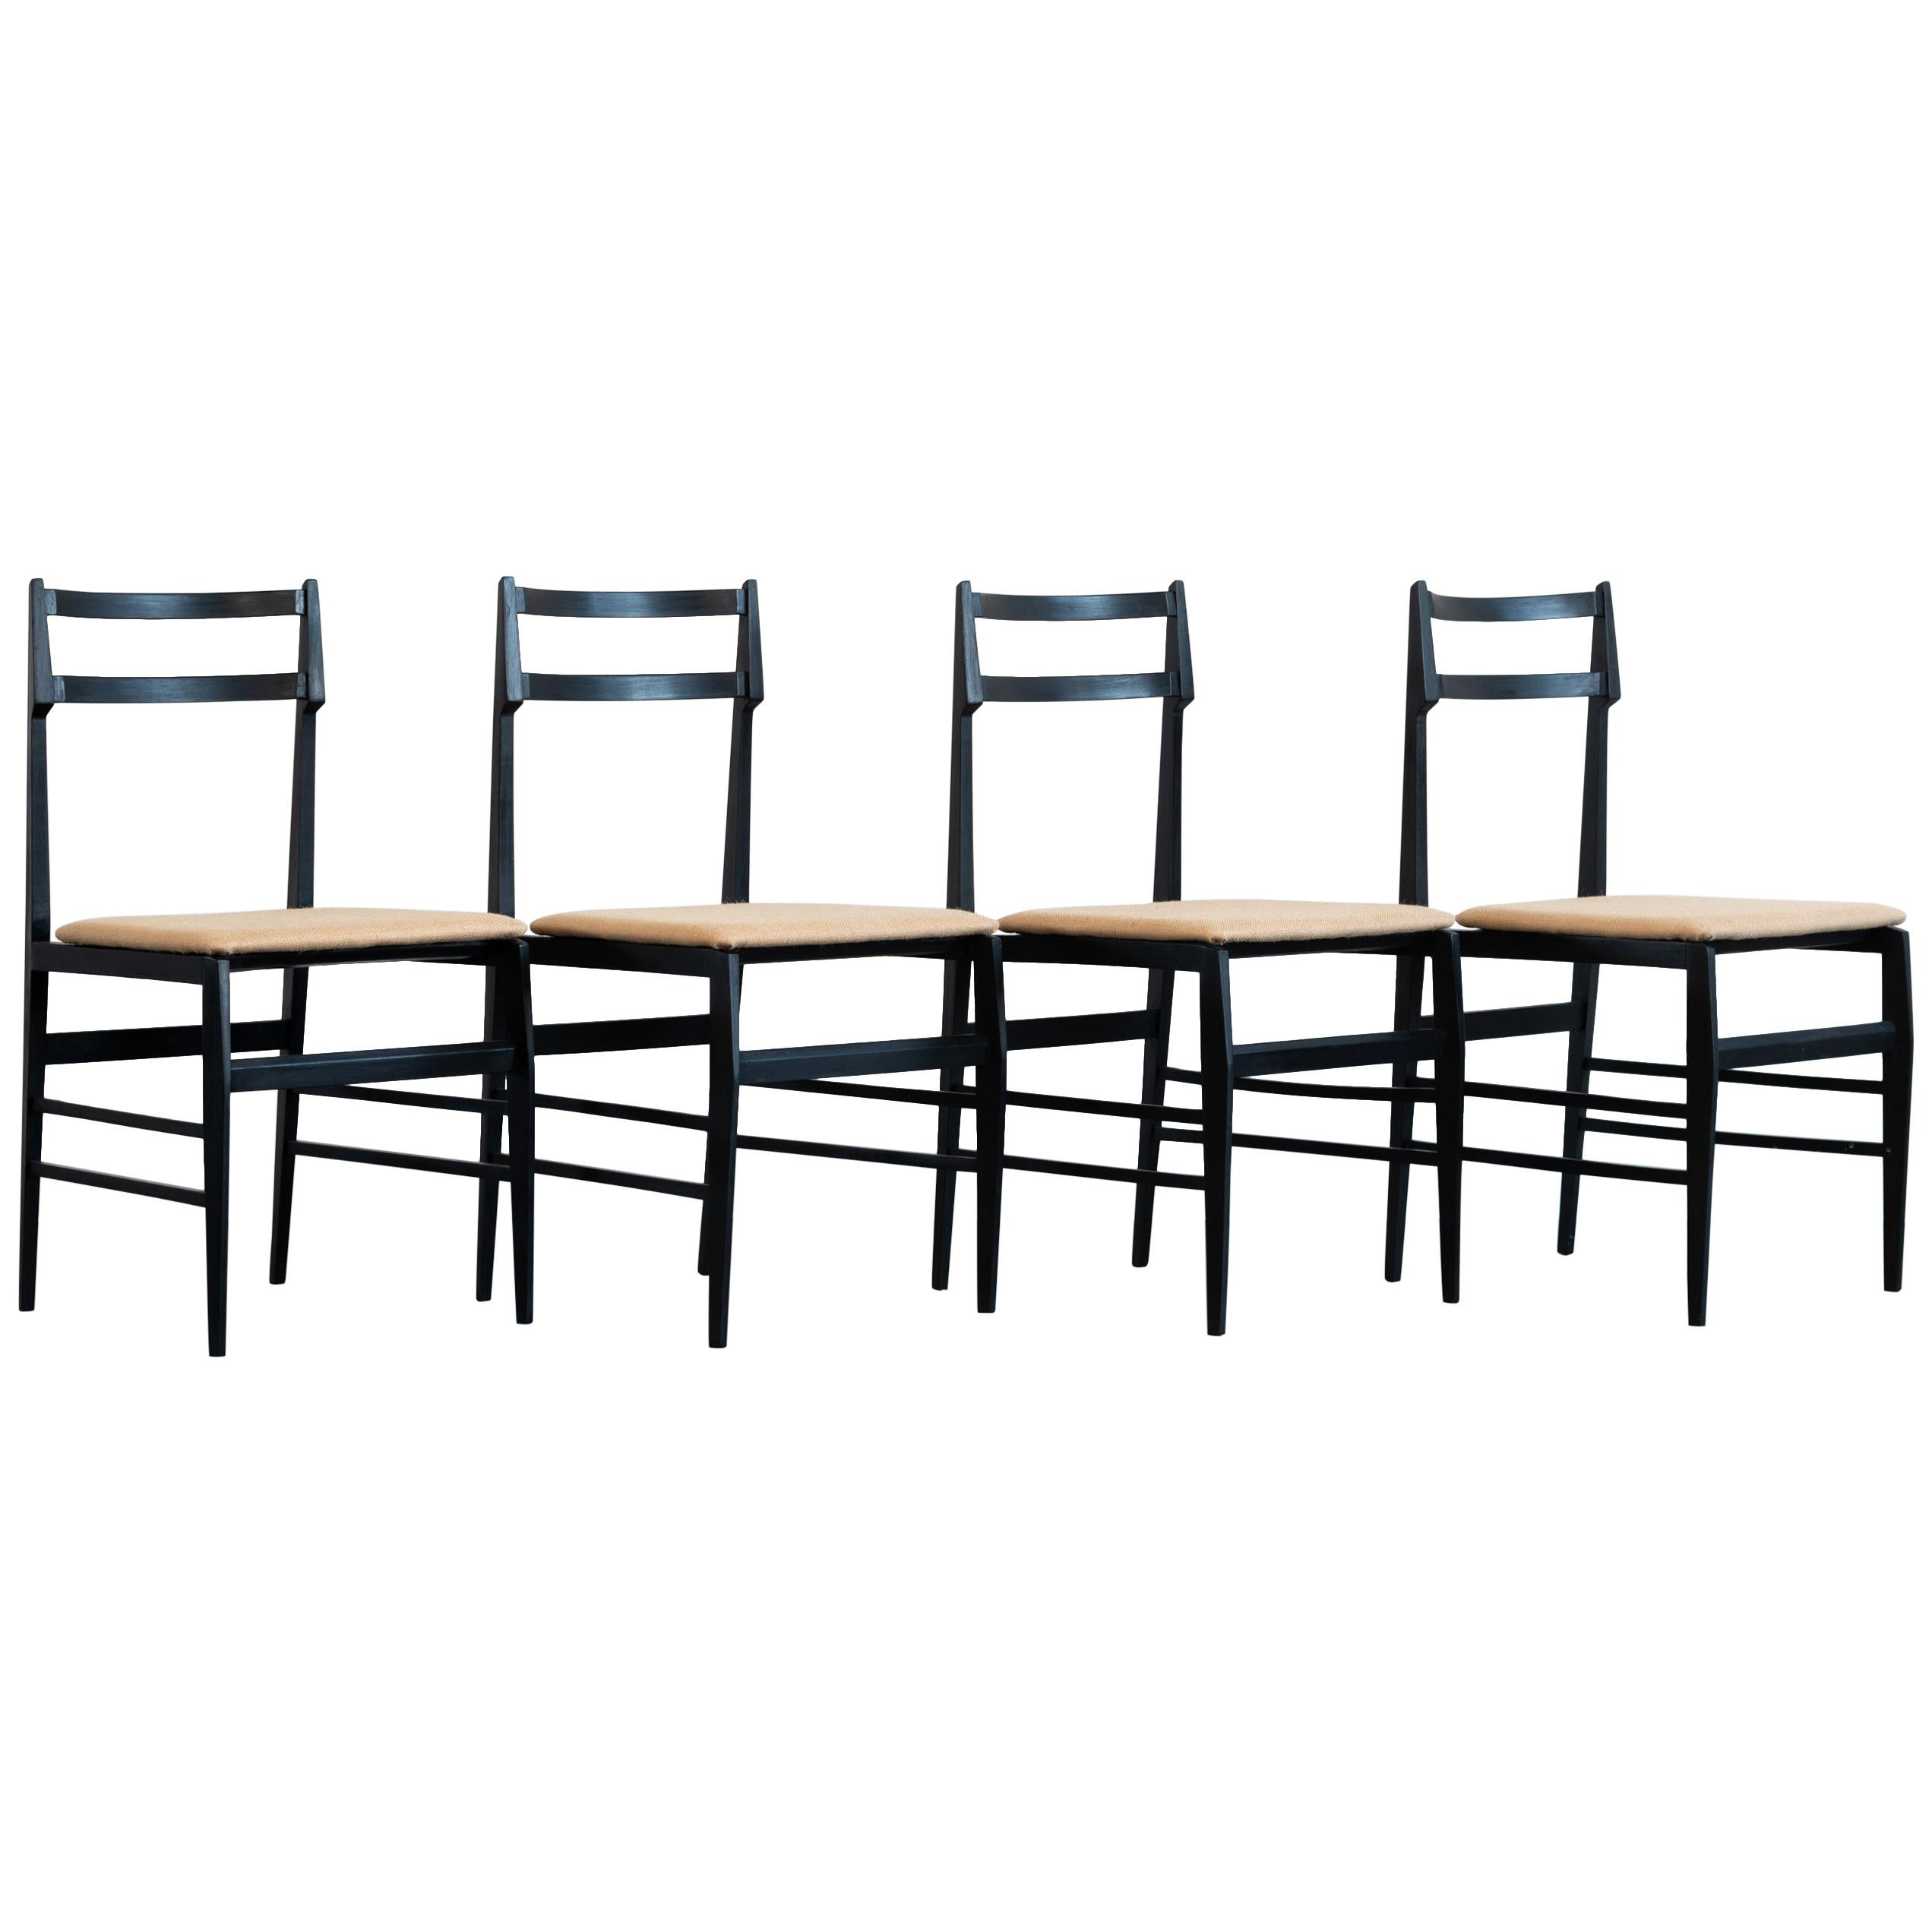 Guglielmo Ulrich Set of Four Chairs Ebonized Wood and Fabric for Saffa, 1960